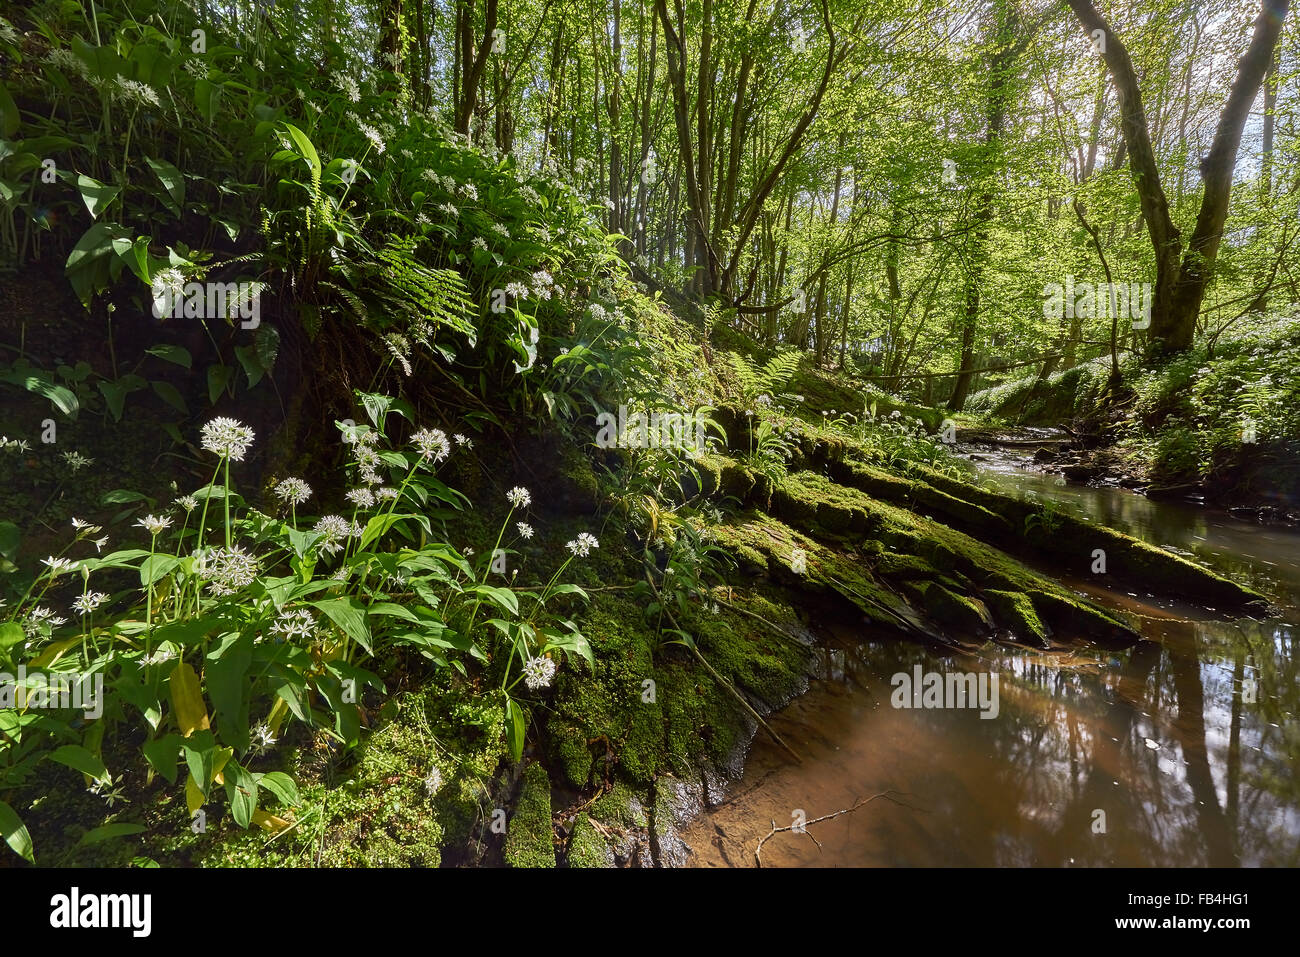 Ancient Woodland in Spring with Ramsons - Stock Image